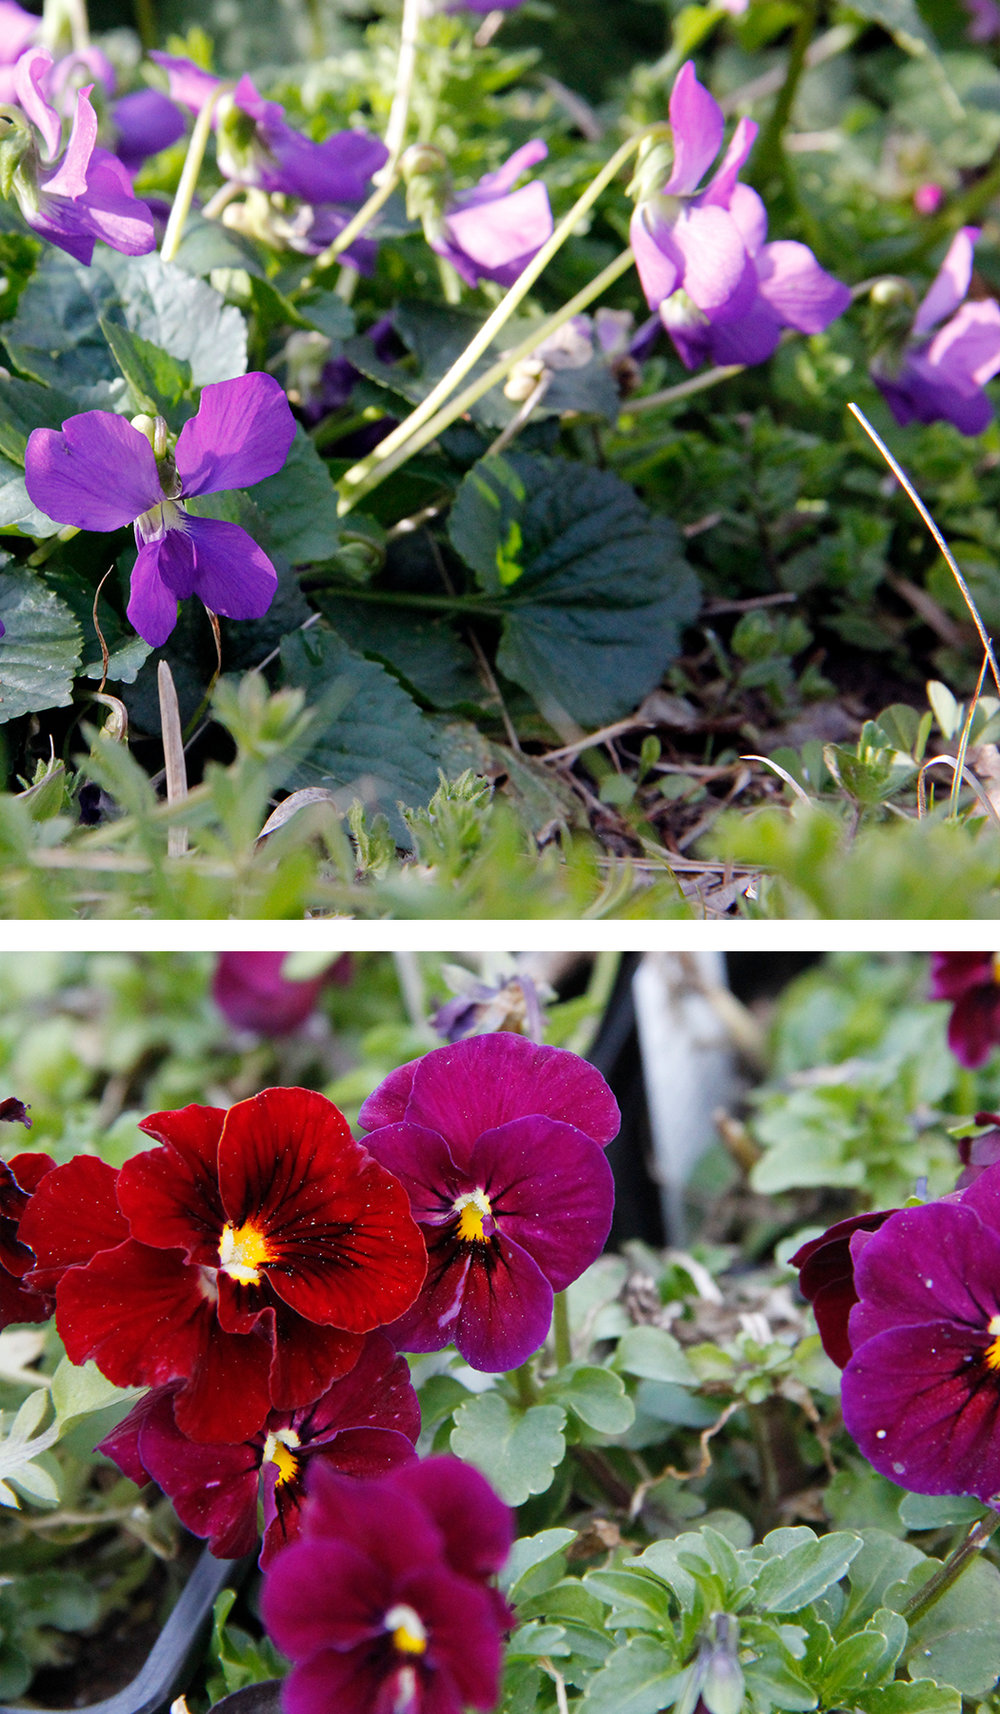 Violets: We've already professed a love for the Violaceae family (violas, pansies, Johnny jump-ups) but right now the wild violets are putting on a spectacular show.Pro Tip: If you don't spray your yard or have dogs peeing on them, go out and collect the leaves and flowers for a wonderful addition to fresh salads. -